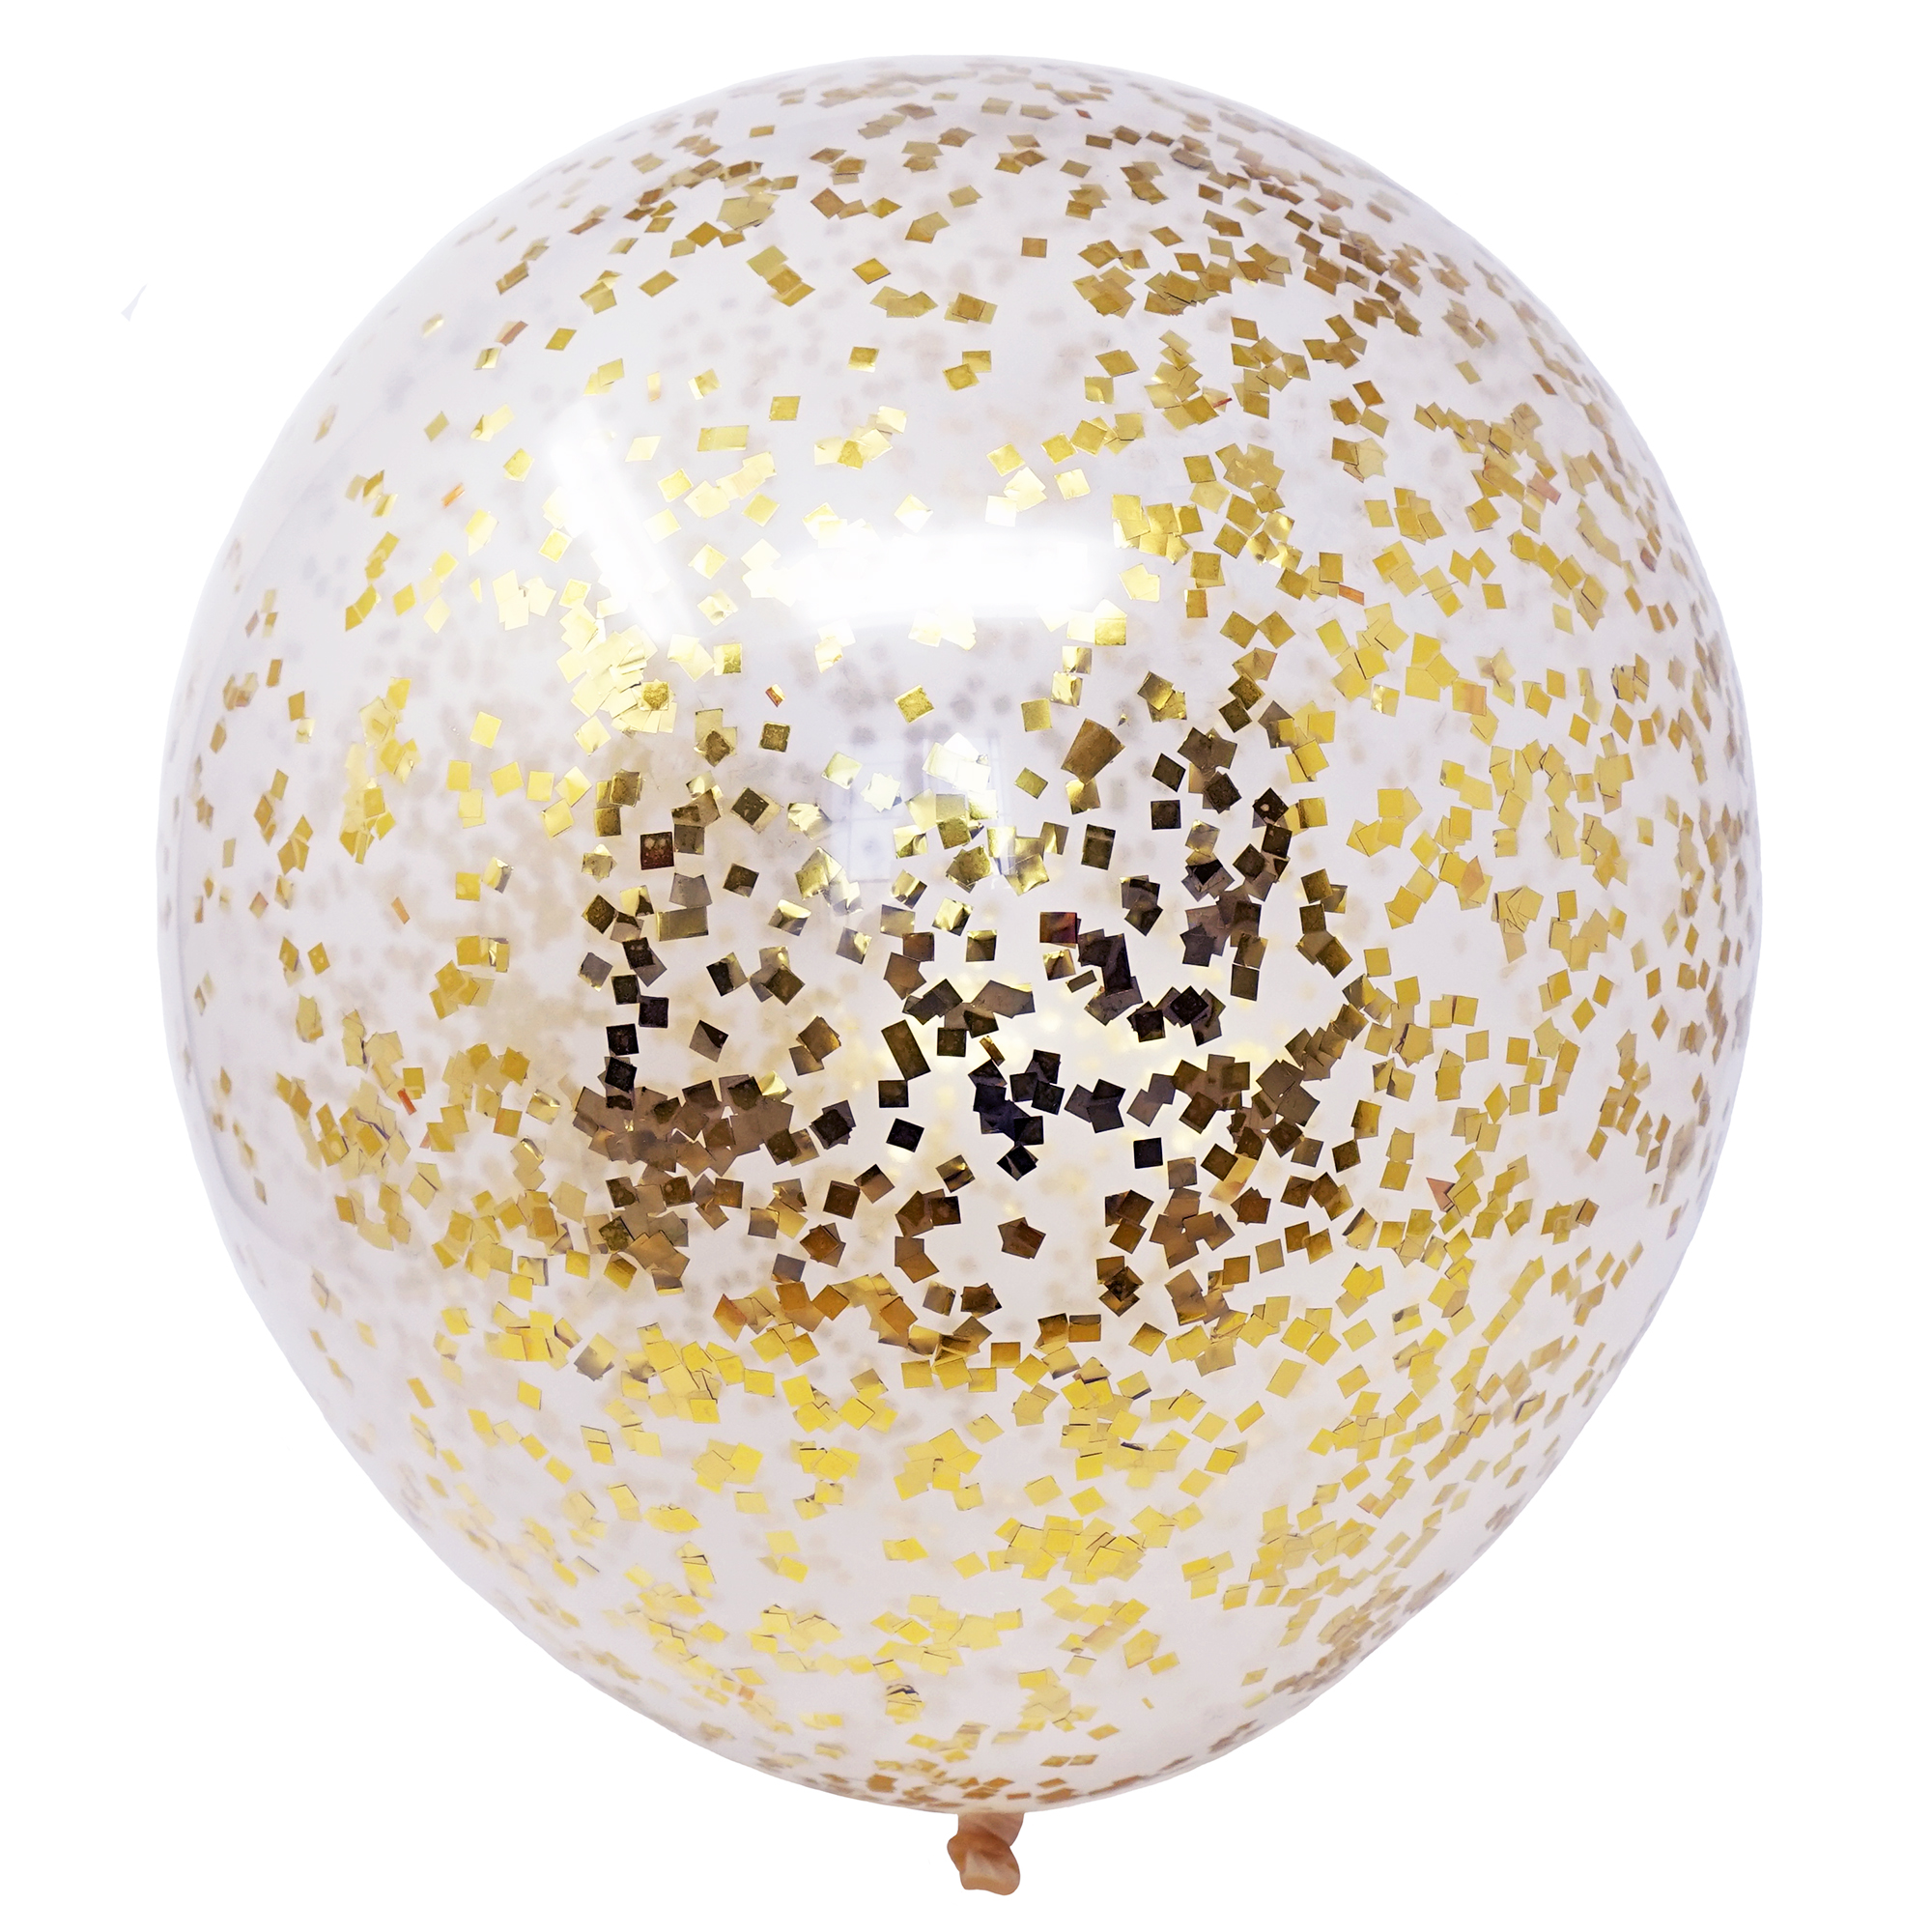 18 Inch Confetti Filled DIY Kit Party Balloons Set, 6 Clear Balloons + 50 Grams of Tissue Confetti (Pink, White, Gold Mylar Flakes)